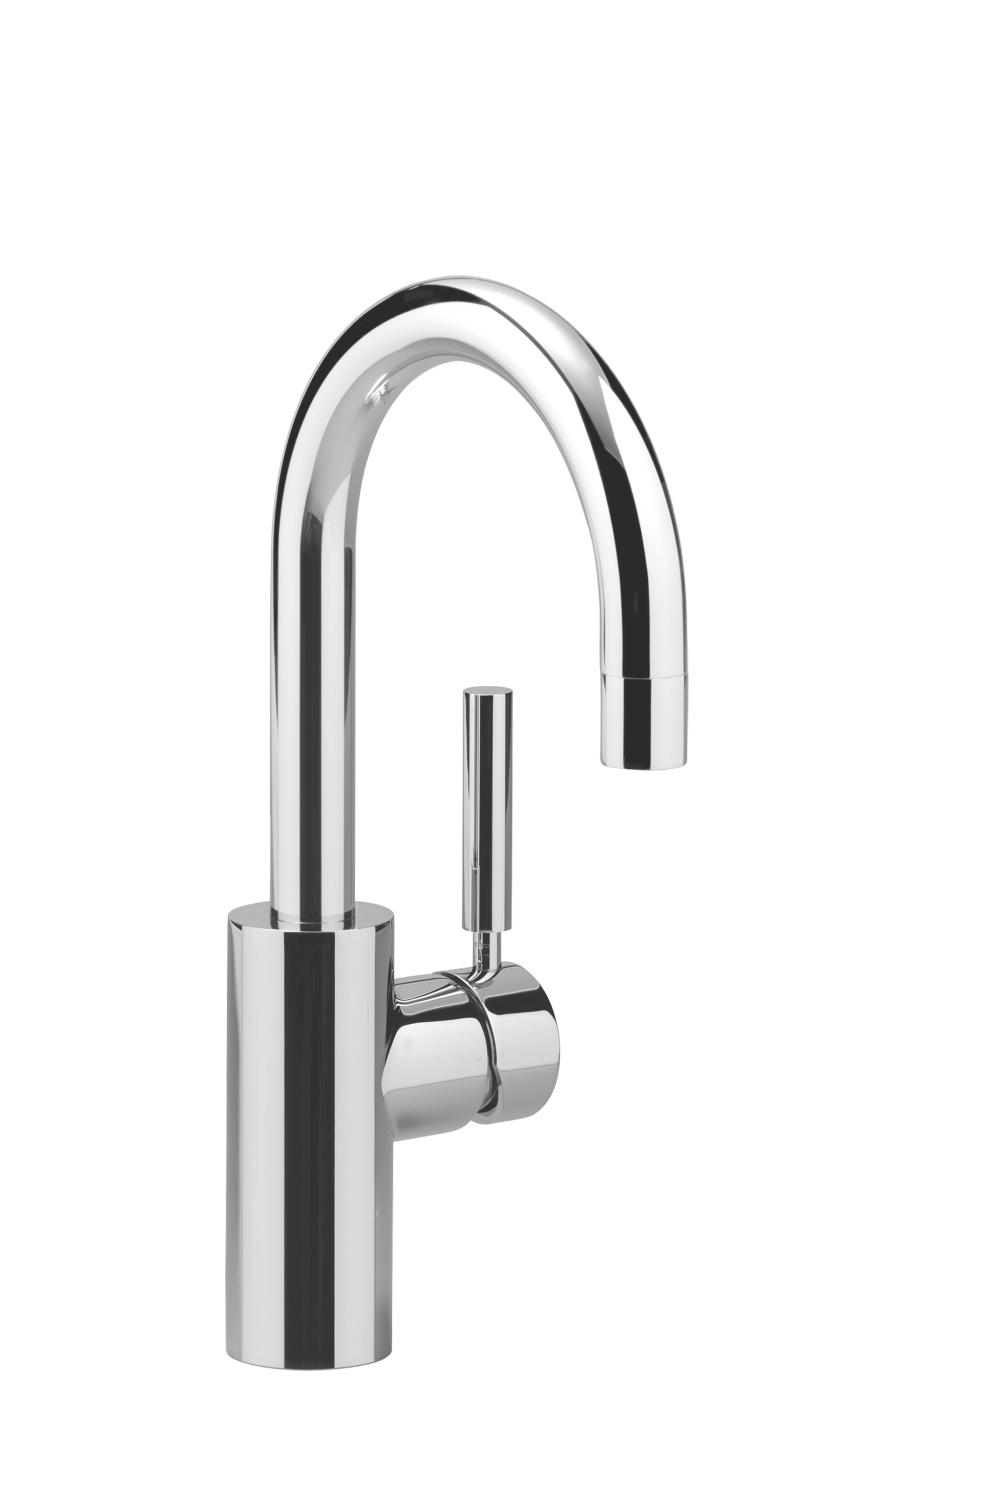 Single-lever basin mixer without pop-up waste - polished chrome - 33 525 885-00